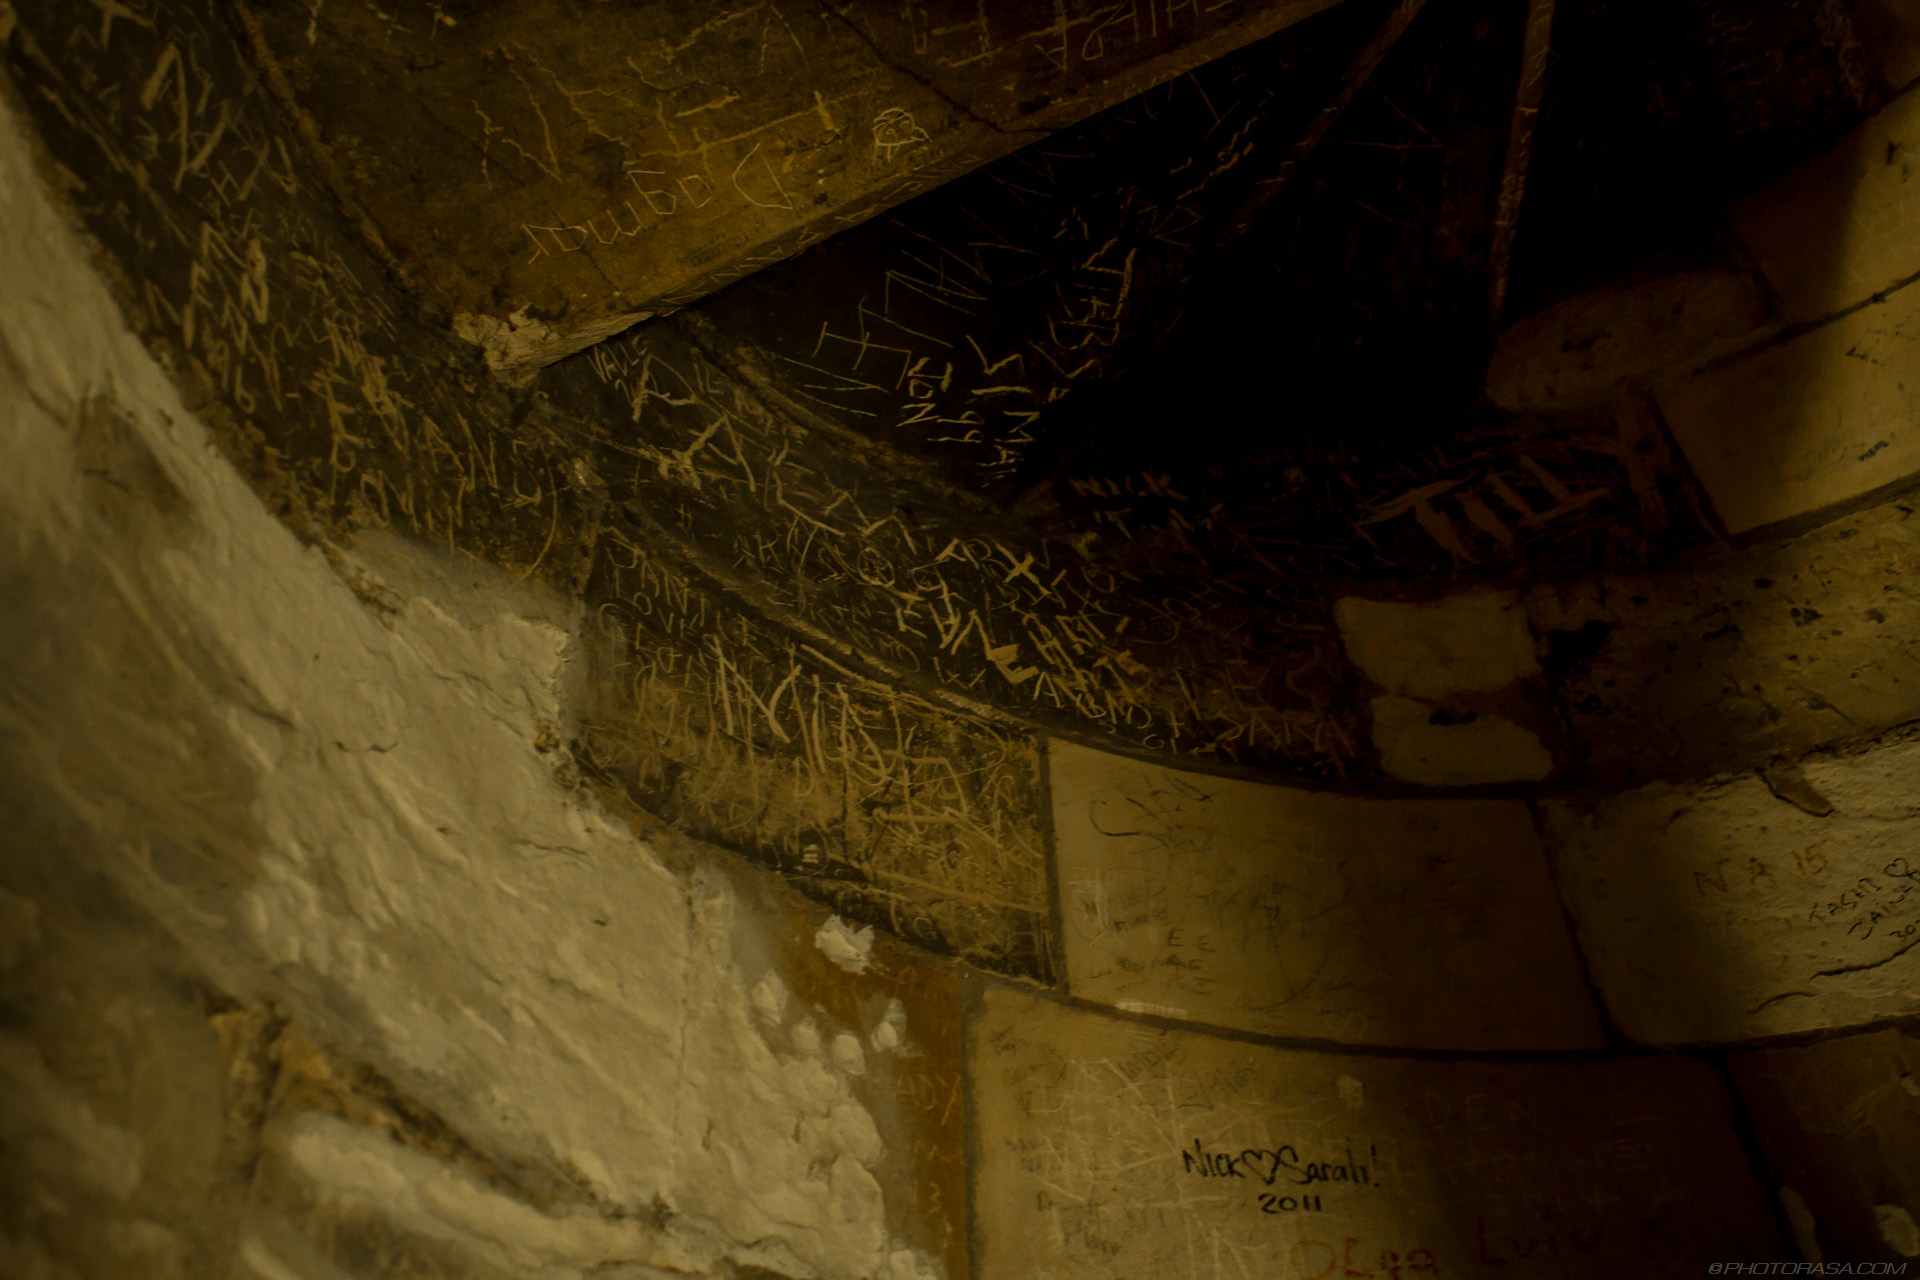 http://photorasa.com/yorkminster-cathedral/old-graffiti/